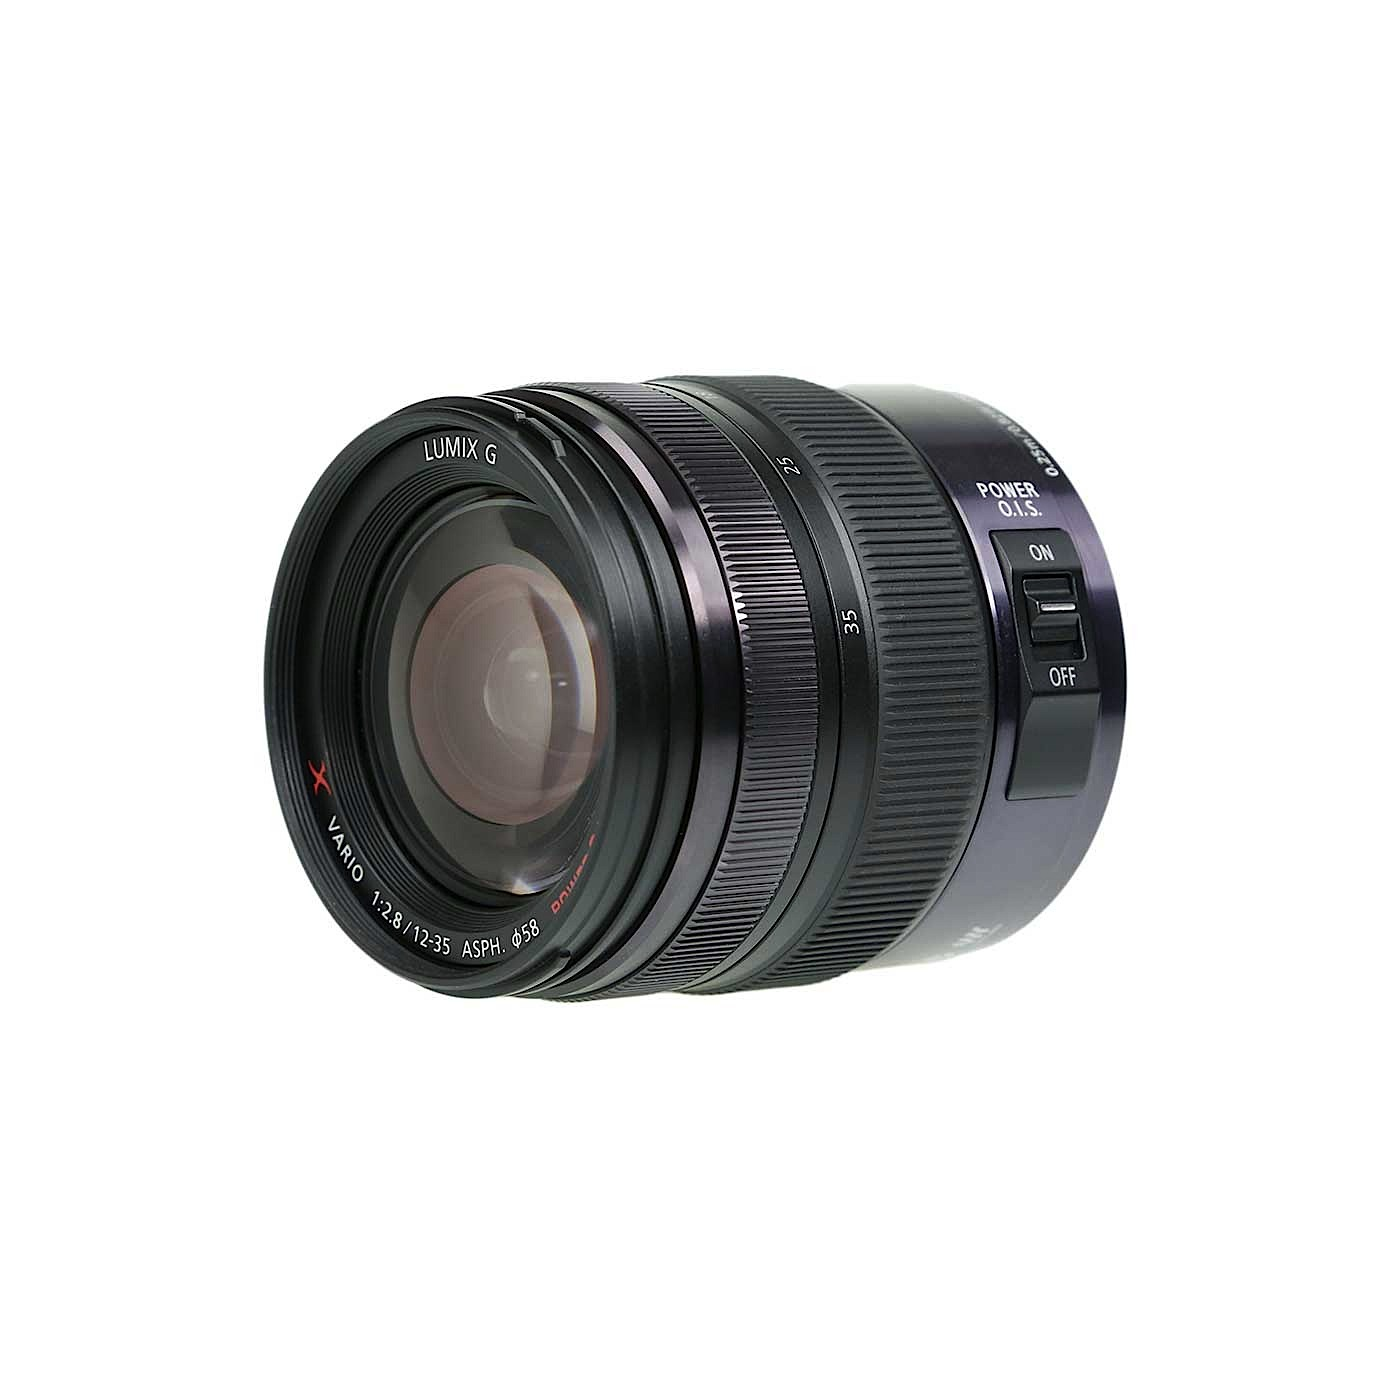 Panasonic 12-35mm f2.8 Lumix Zoom Lens